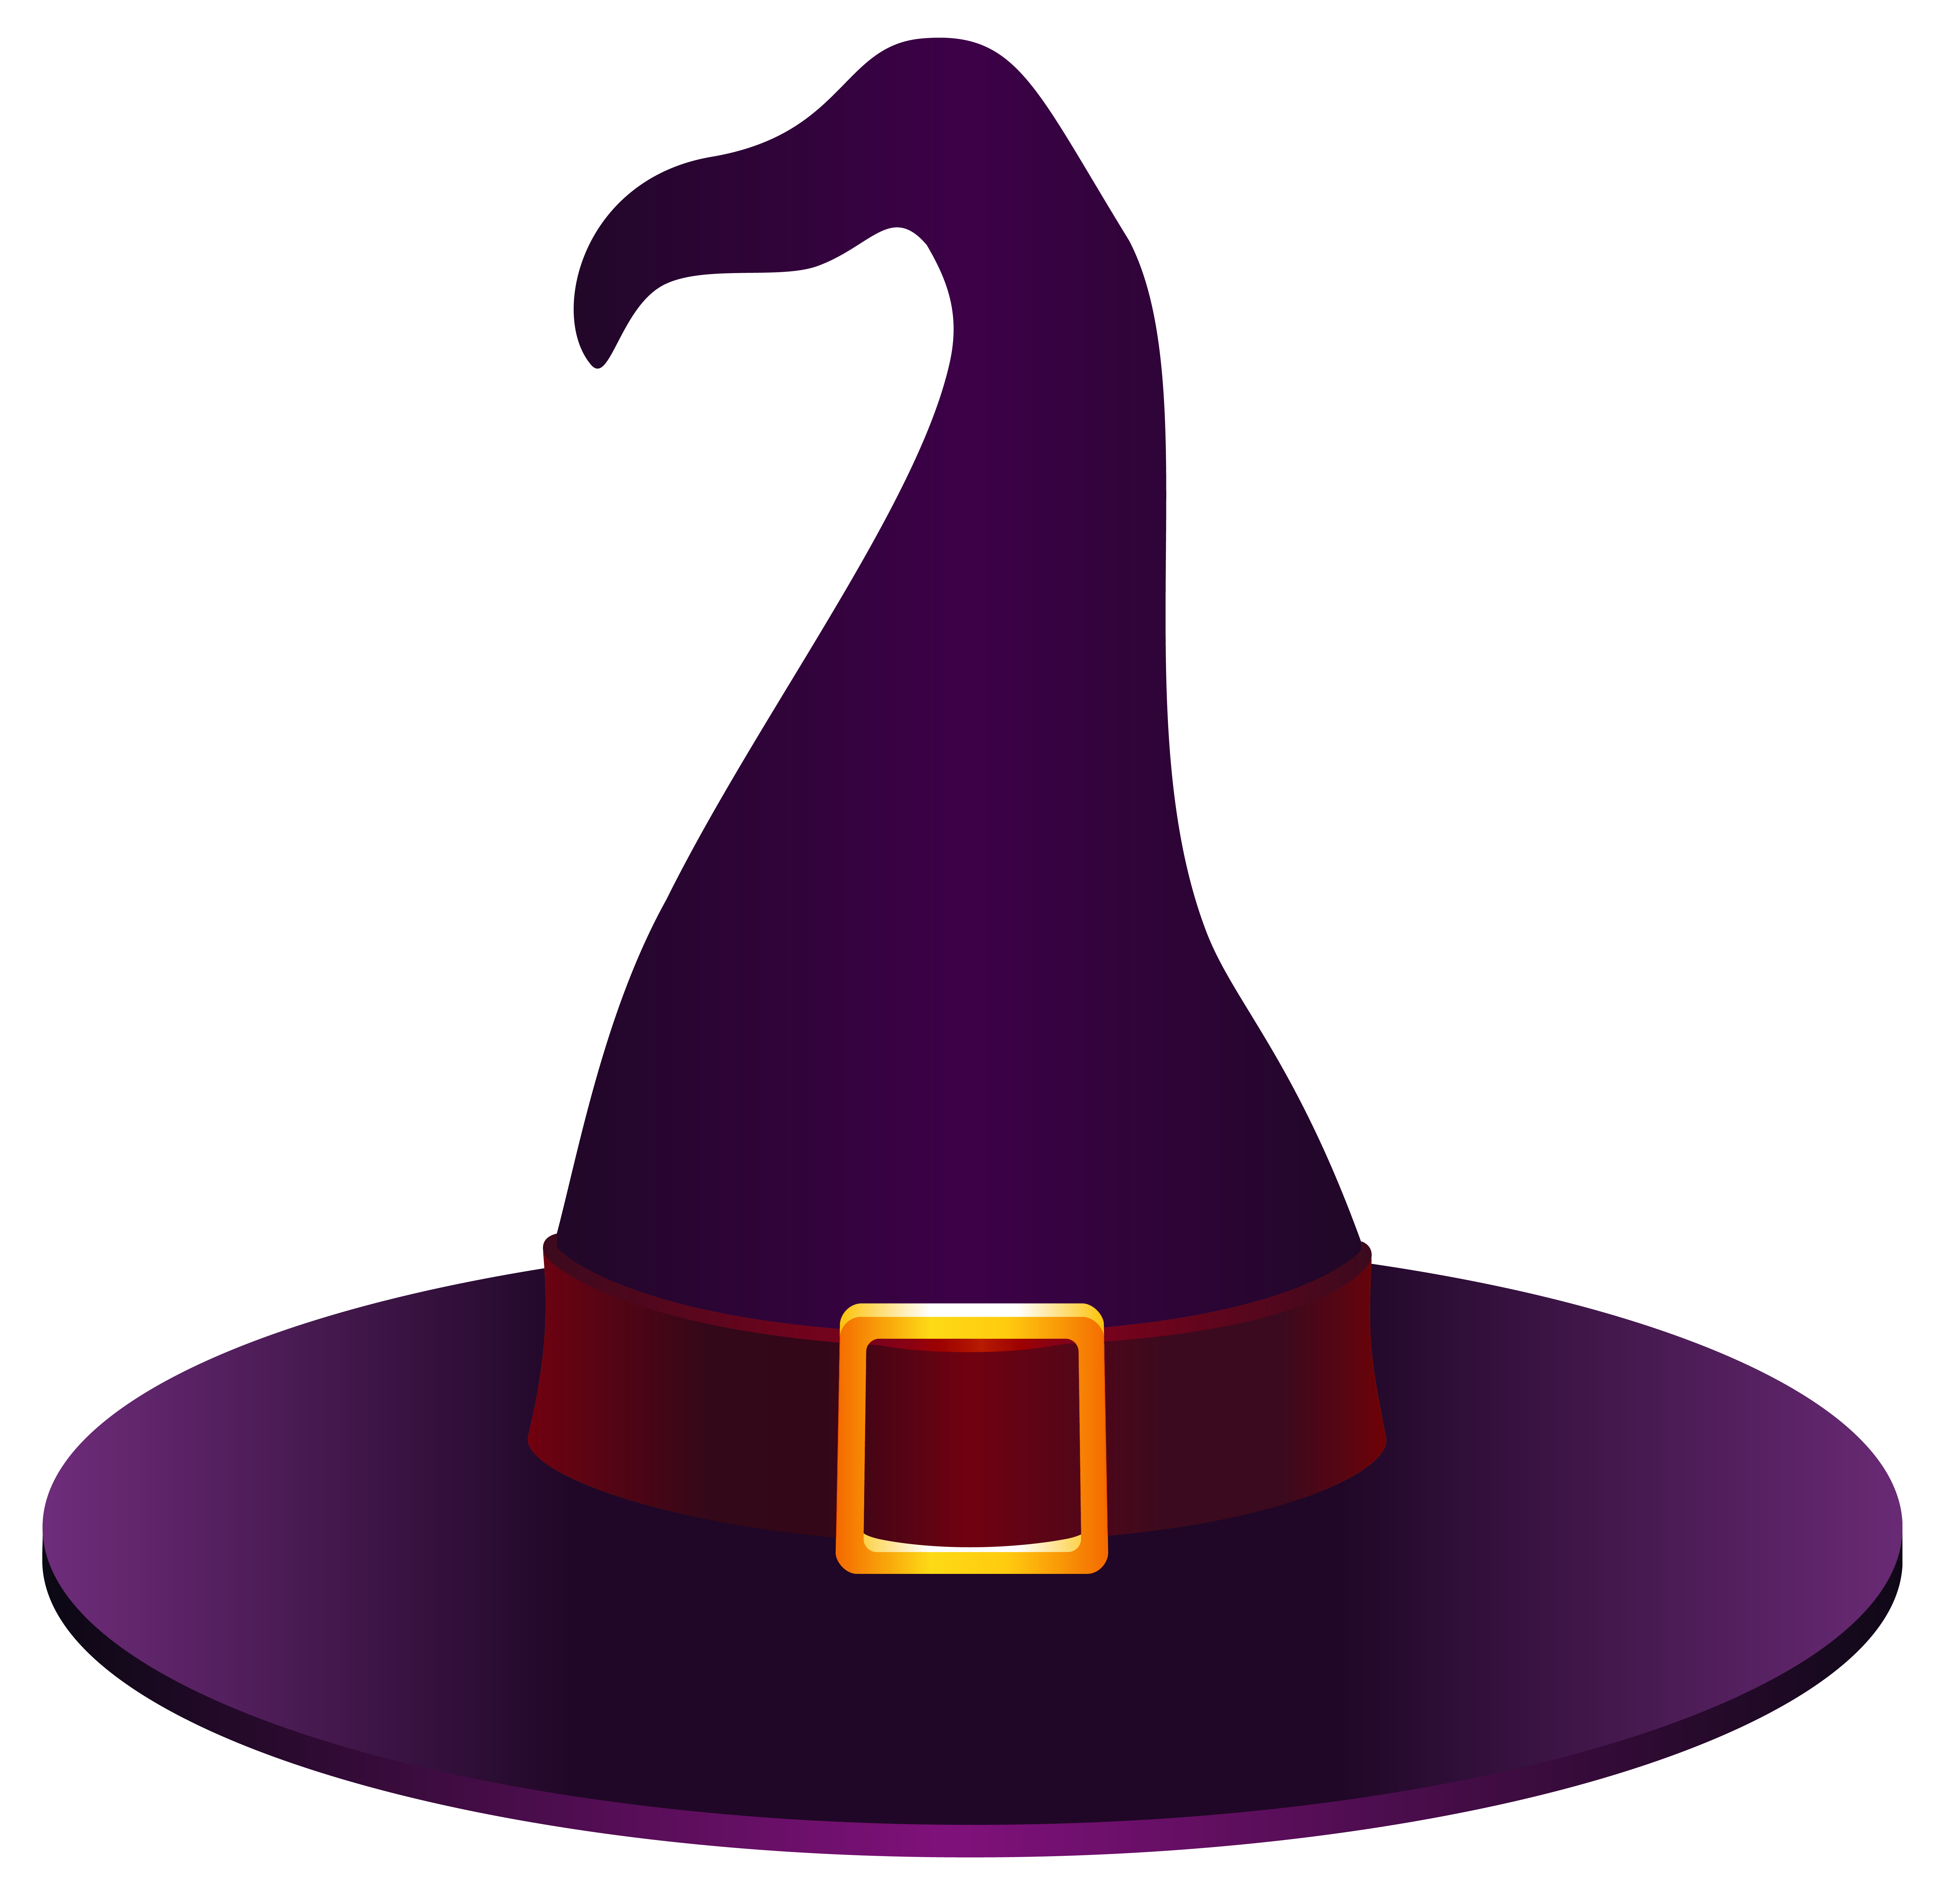 Witch hat clipart picture